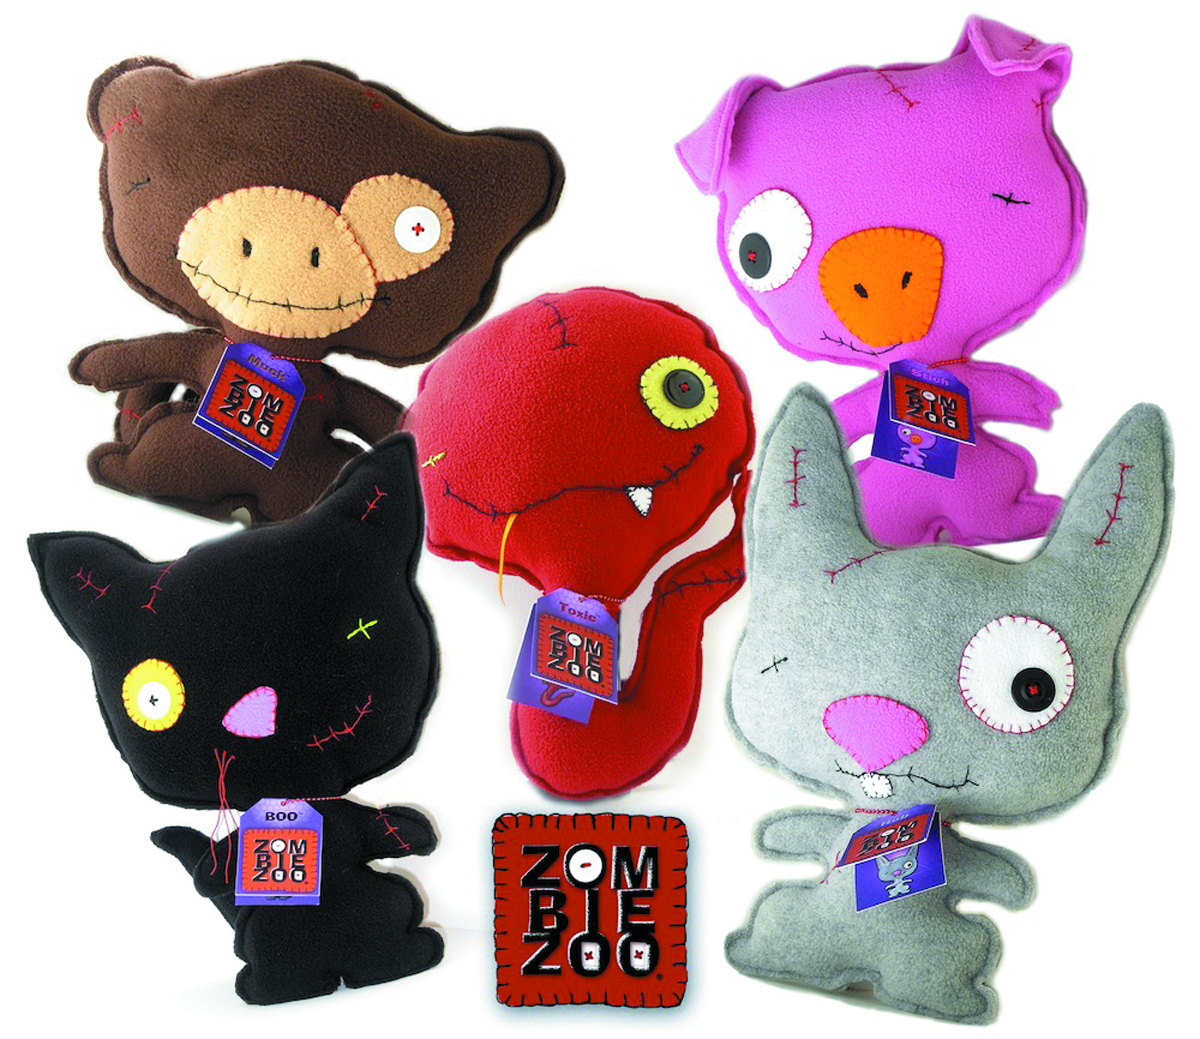 ZOMBIE ZOO 15IN ROB CLASSIC PLUSH